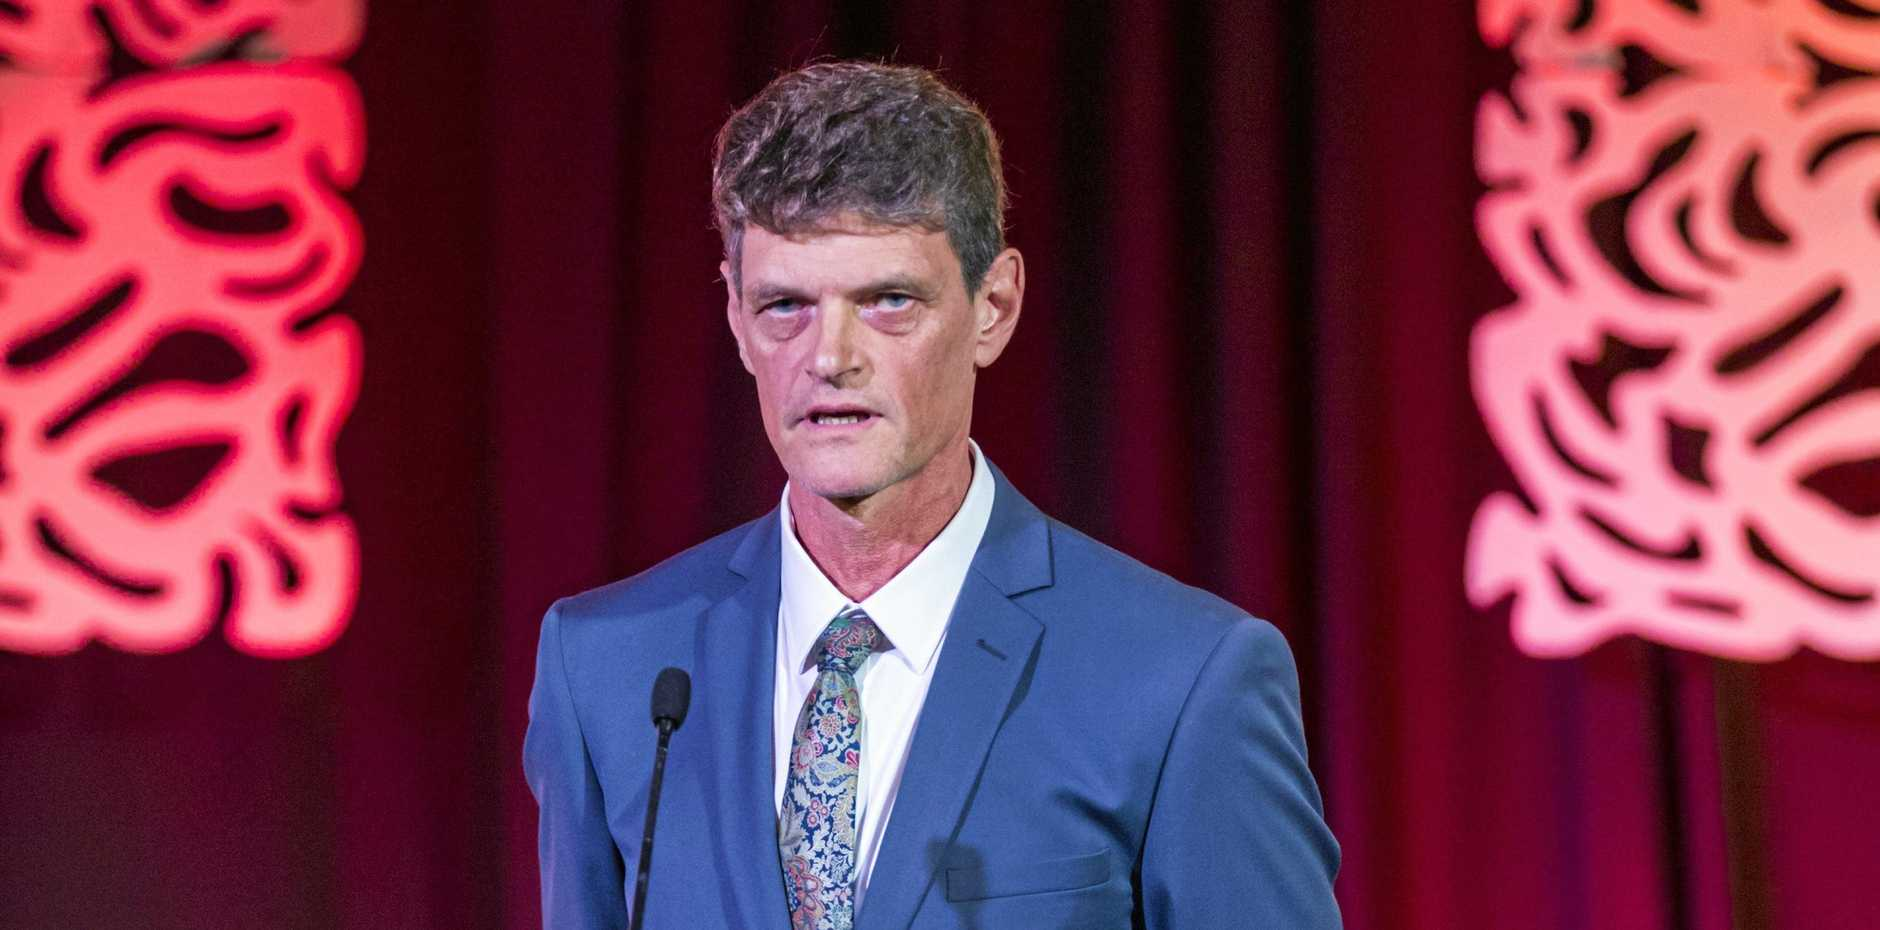 RECOGNITION: Dr Cameron Bardsley winning the Legend of the Bush award at the RDAQ Conference 2019.